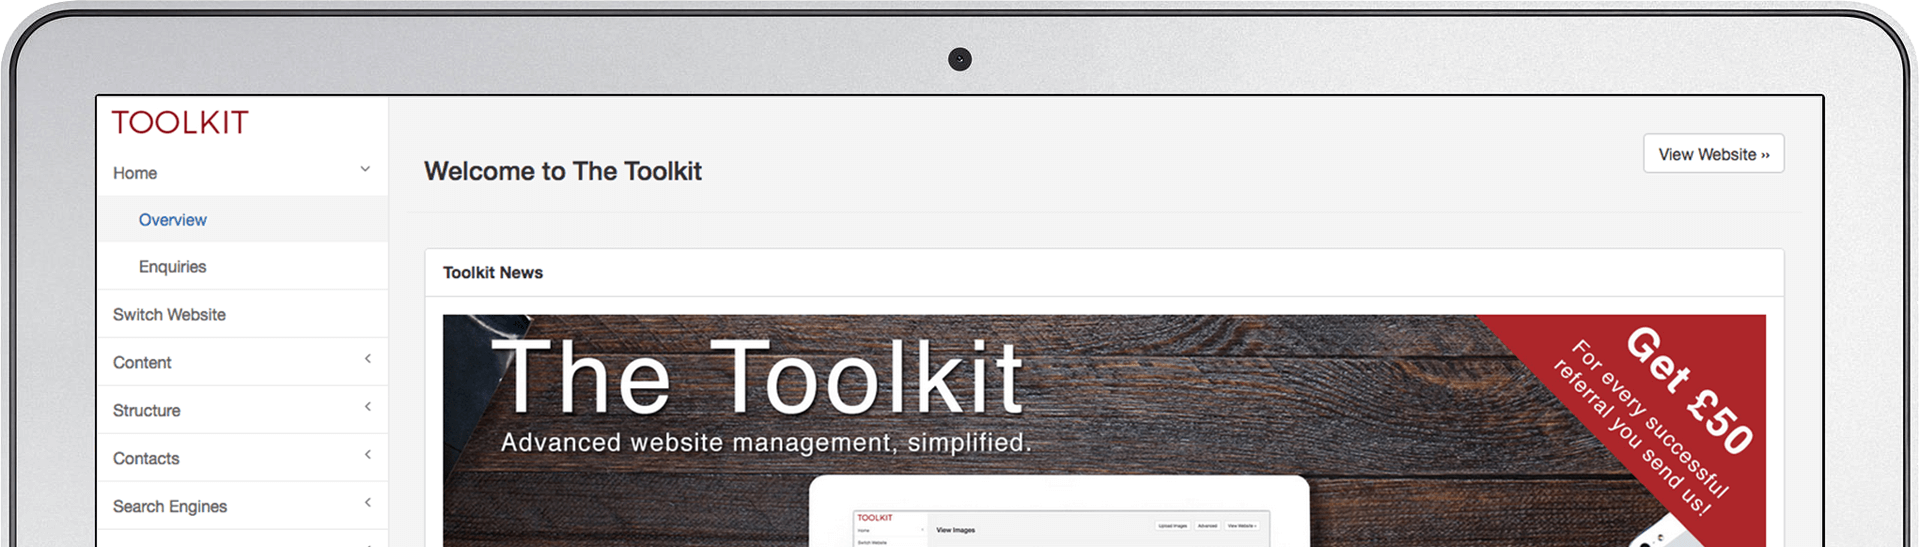 The Toolkit CMS